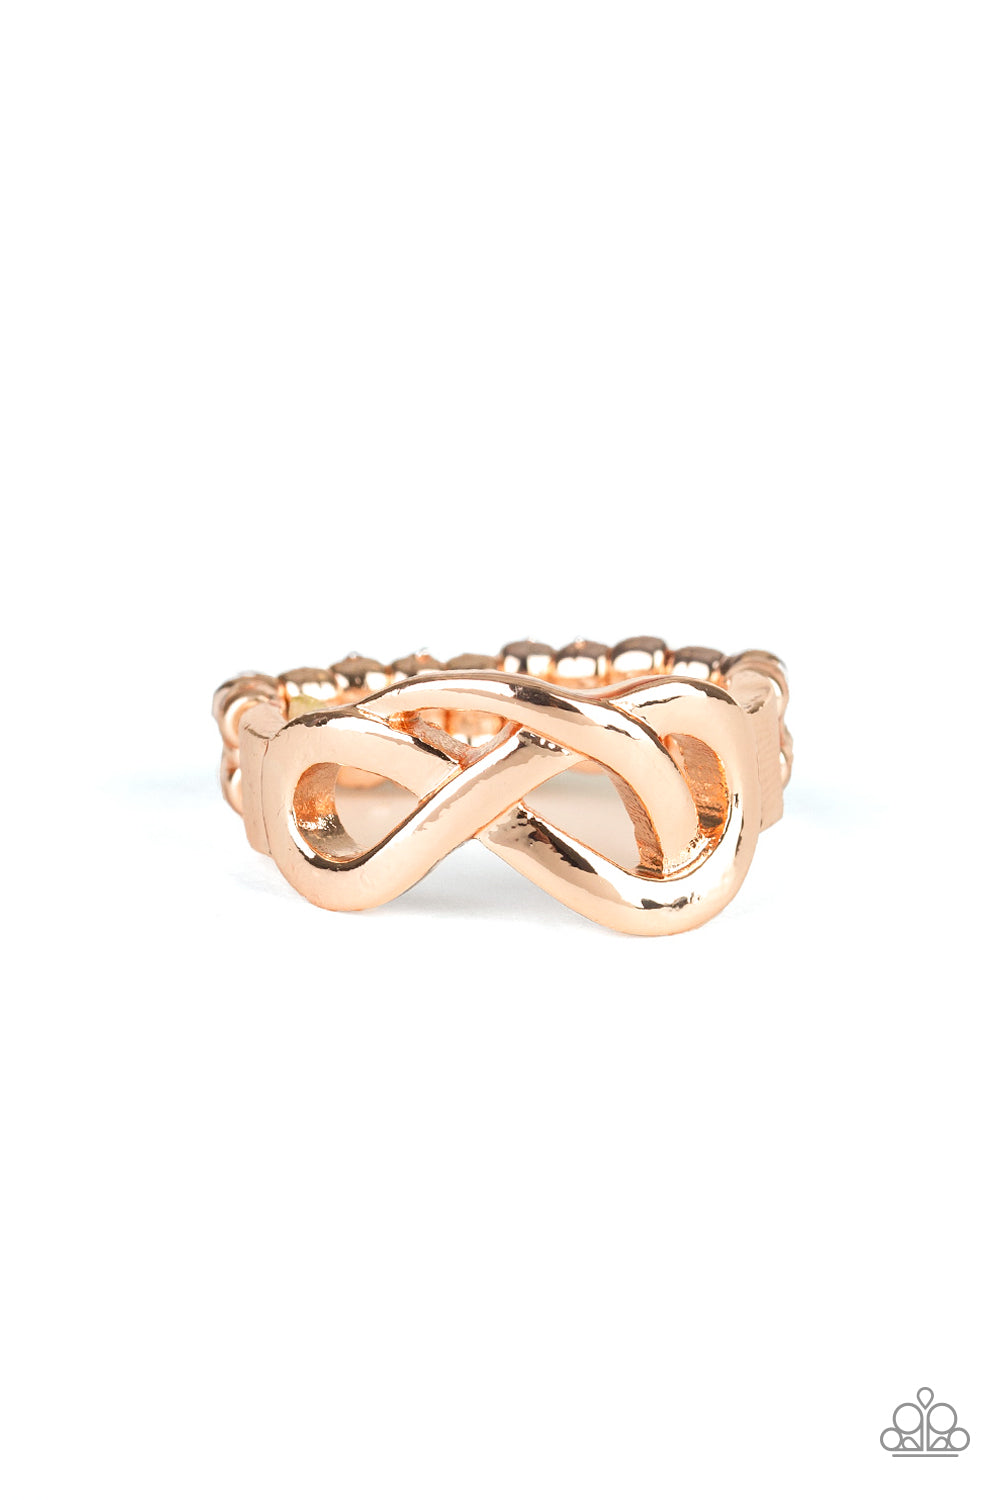 Paparazzi Accessories - Infinitely Industrial - Rose Gold Ring - JMJ Jewelry Collection